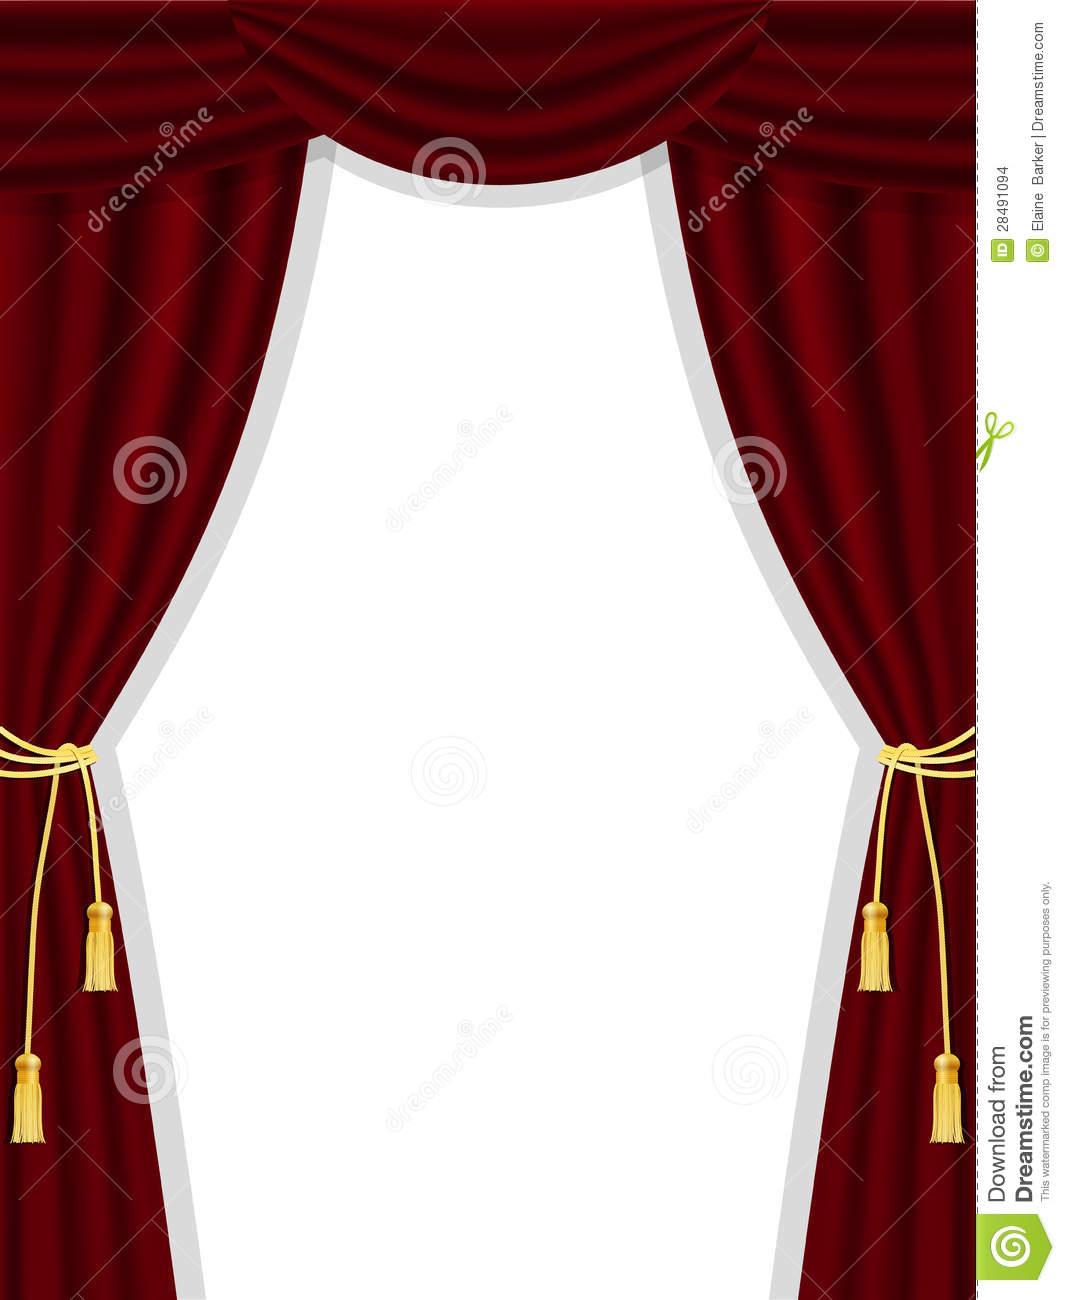 Real open stage curtains - Stage Curtains Open Open Theatre Curtains On White